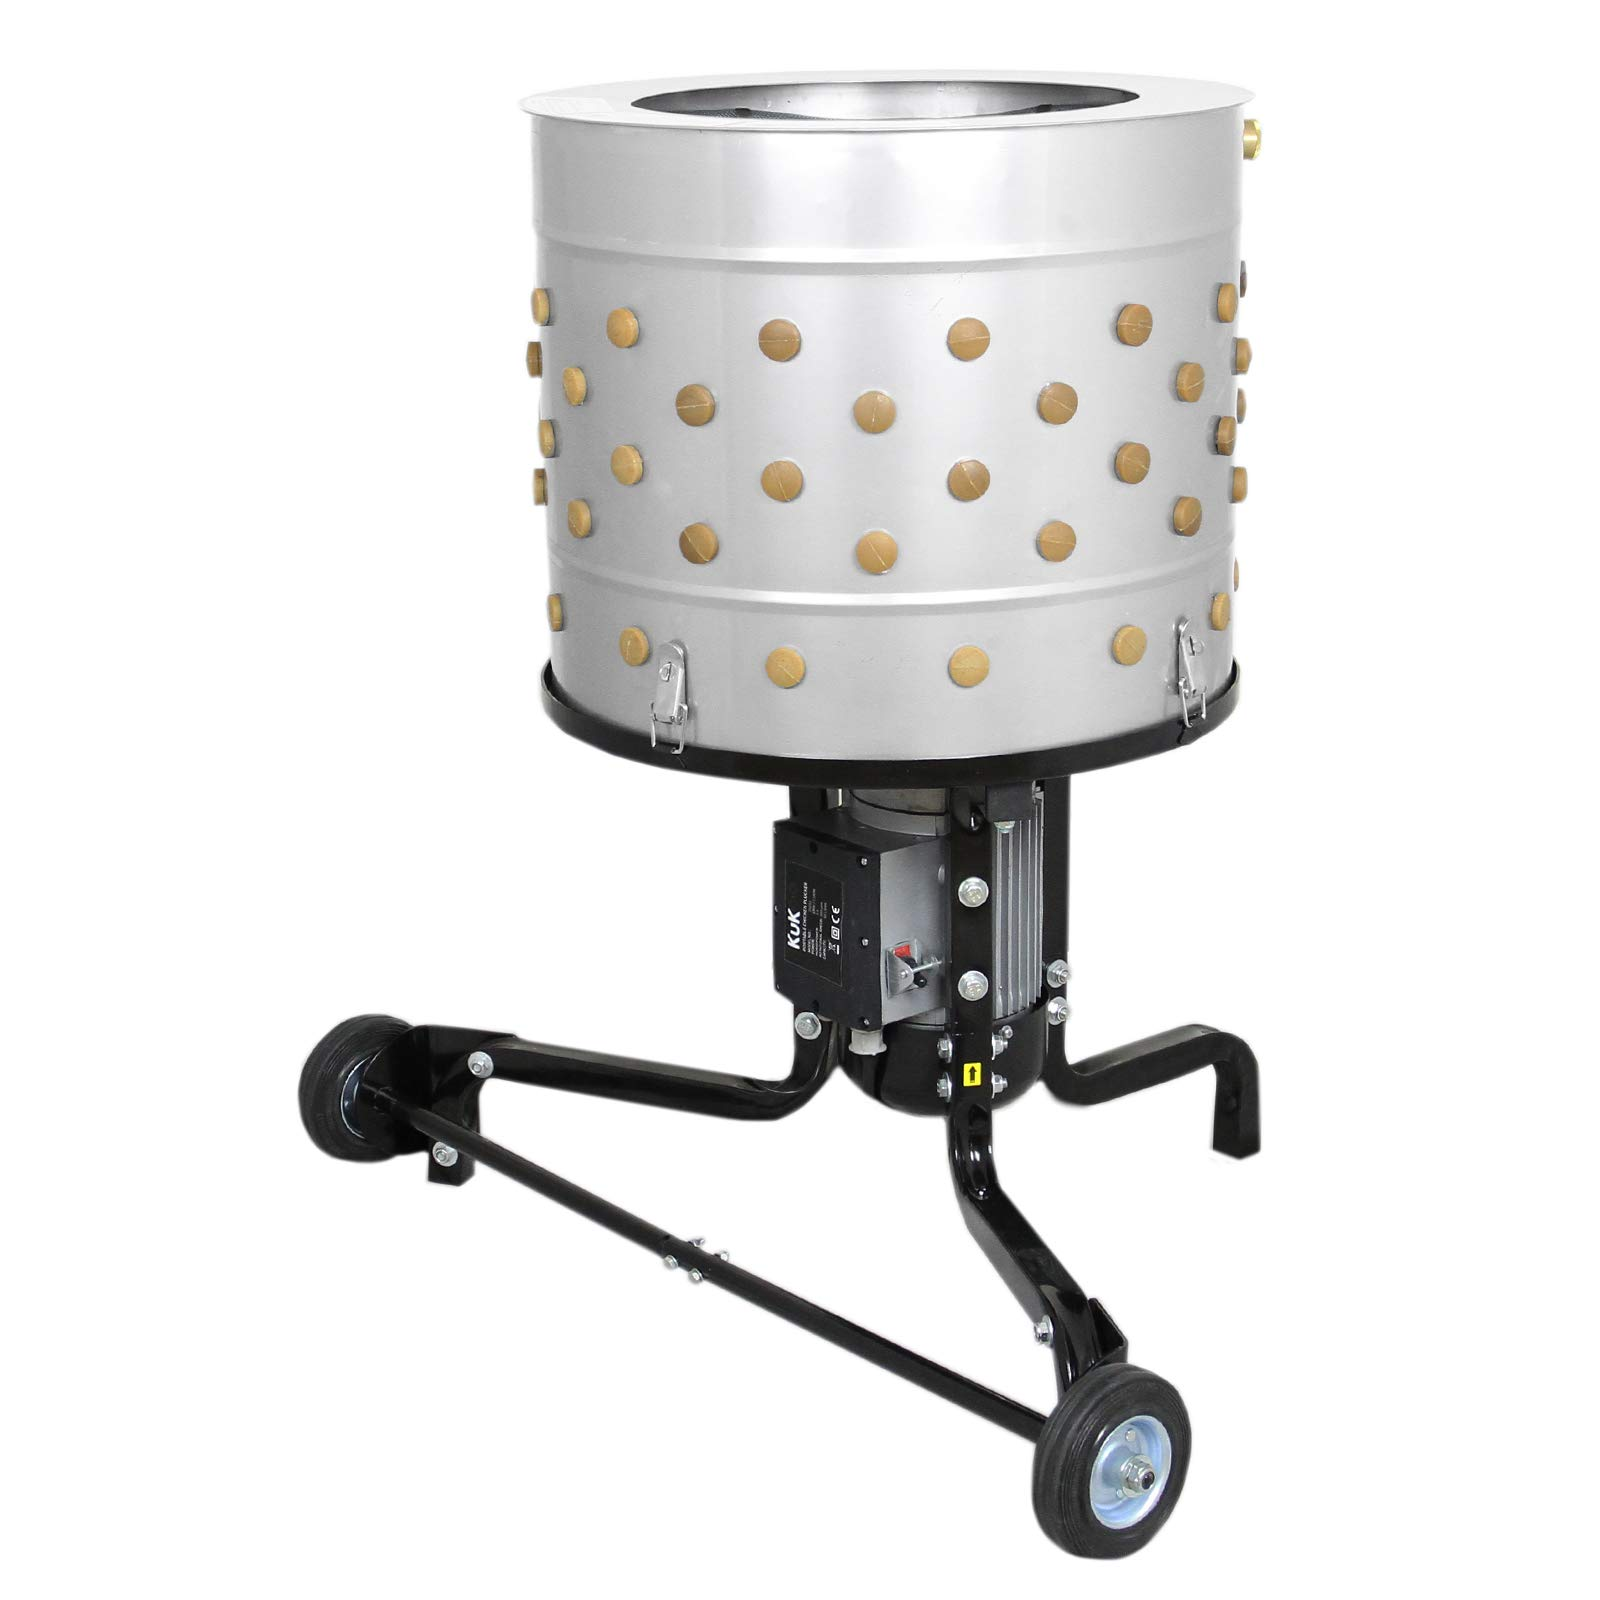 KuKoo Portable Poultry Plucker Machine review